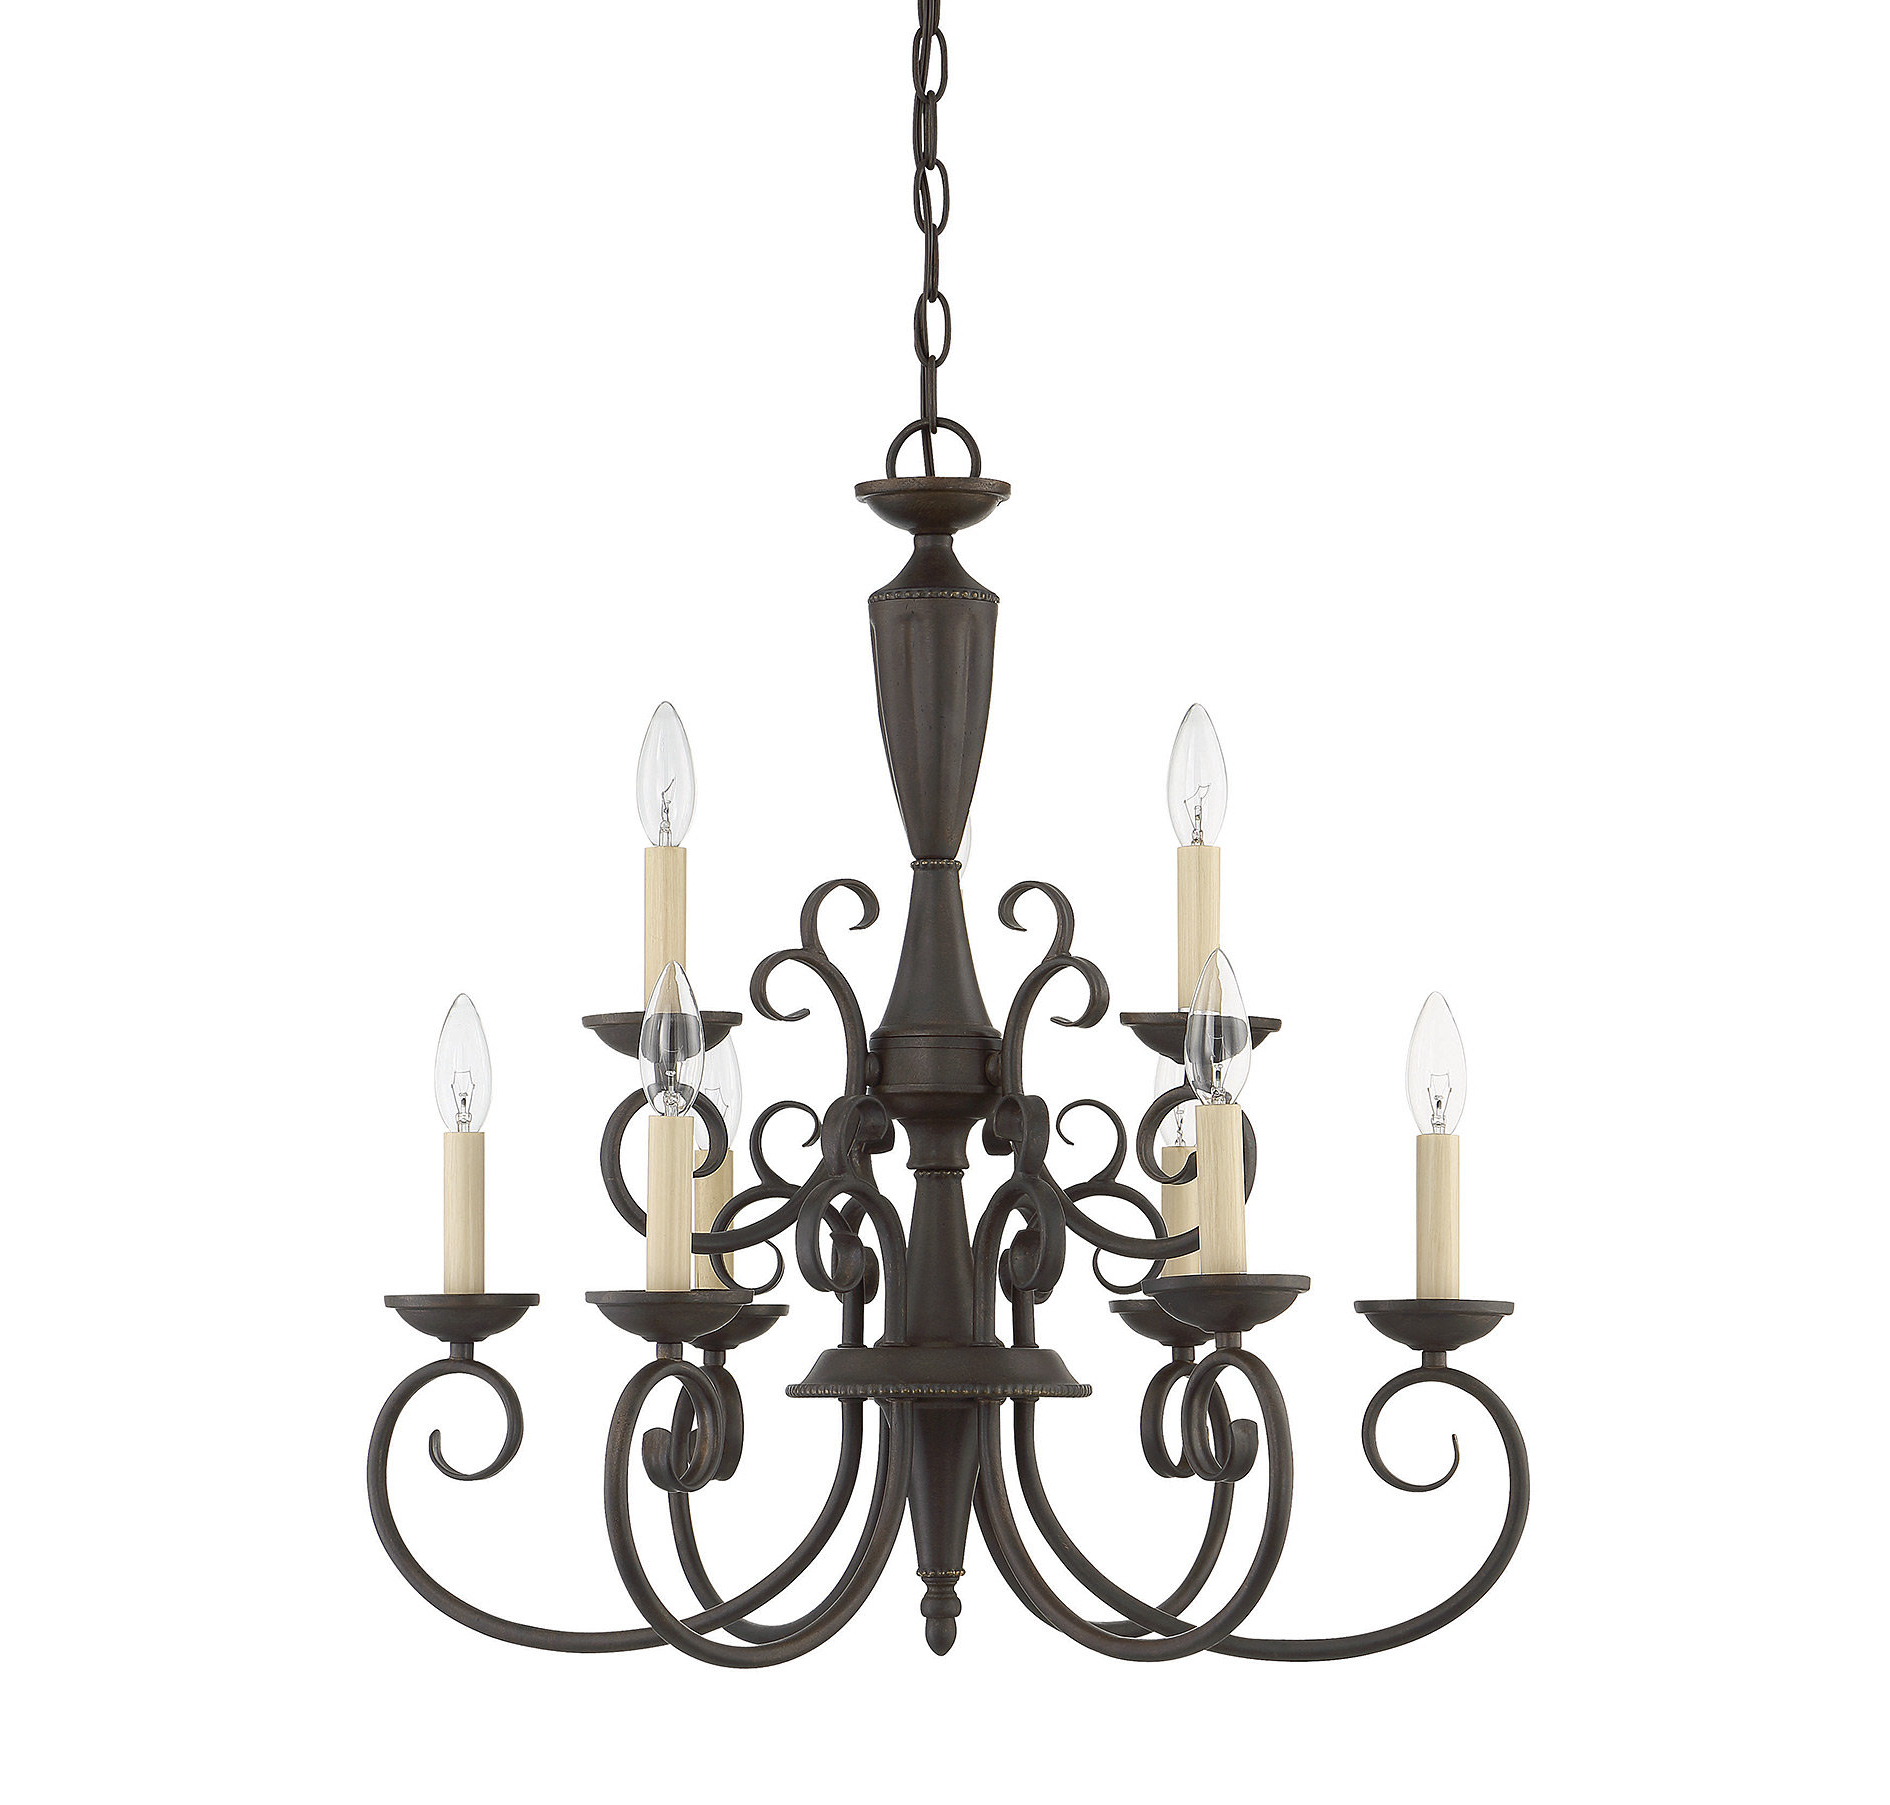 Wayfair Intended For Giverny 9 Light Candle Style Chandeliers (View 20 of 20)